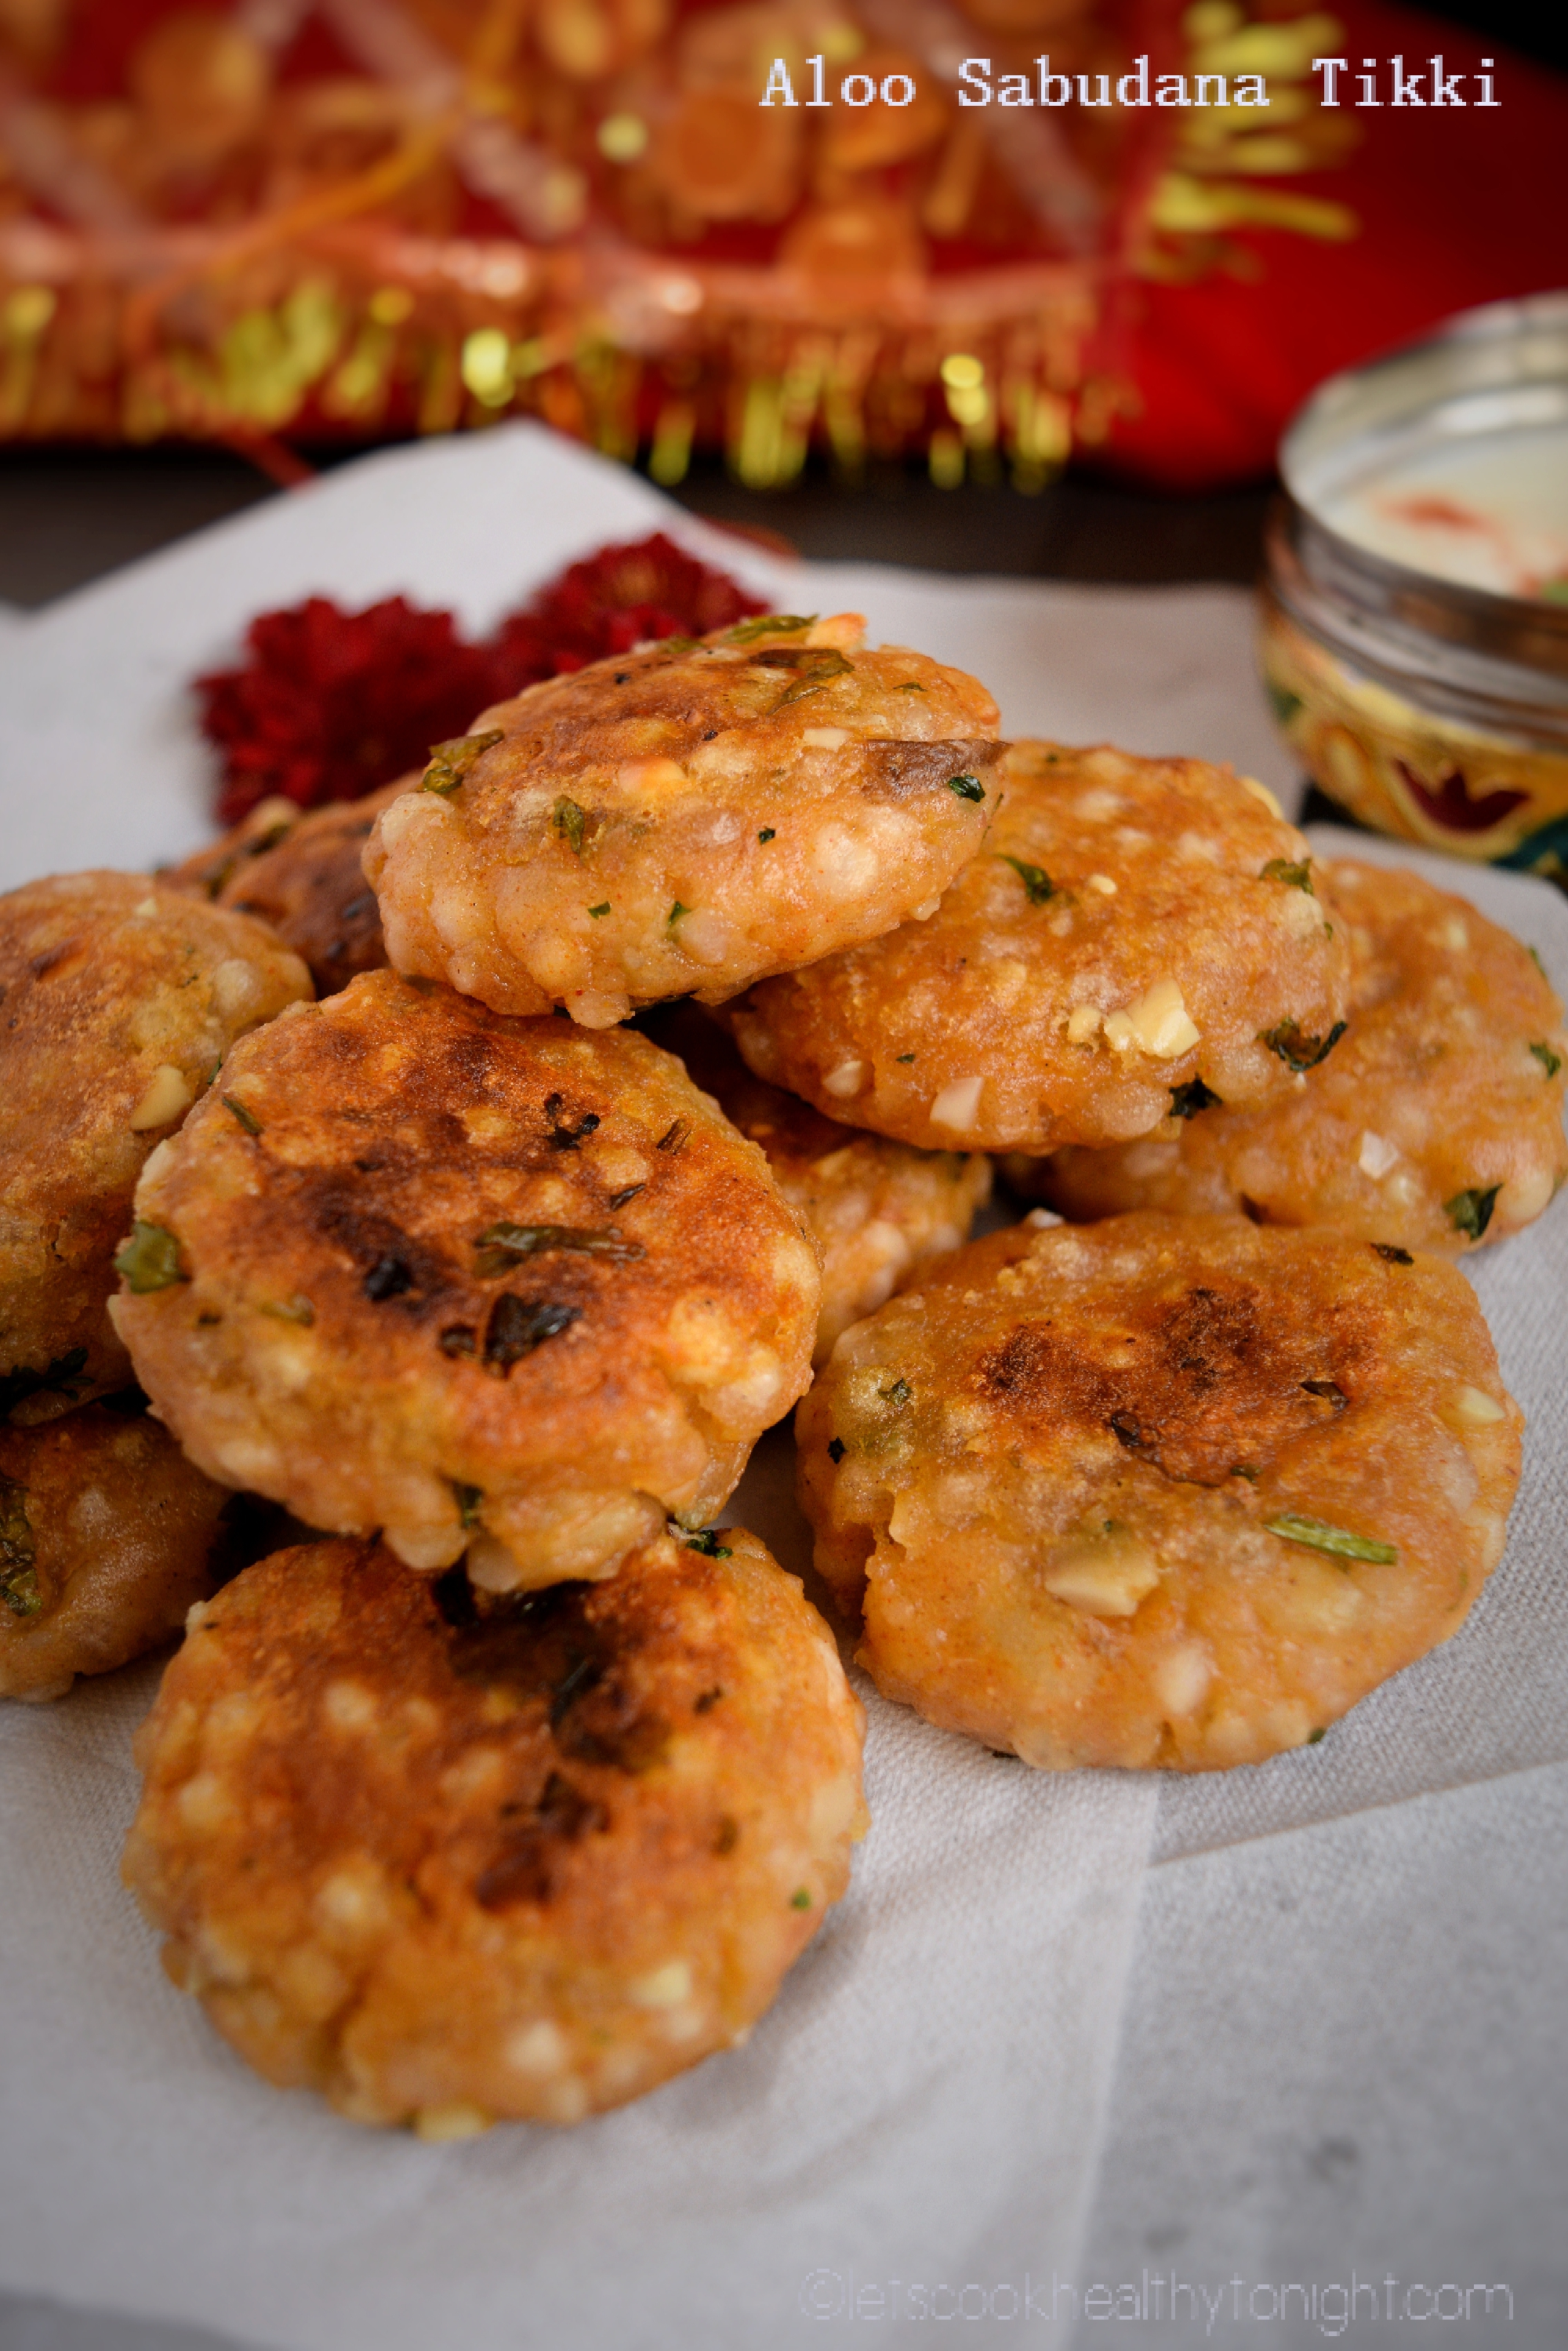 Nine Days of Navratri- Falahari Recipe- Sabudana Aloo Tikki